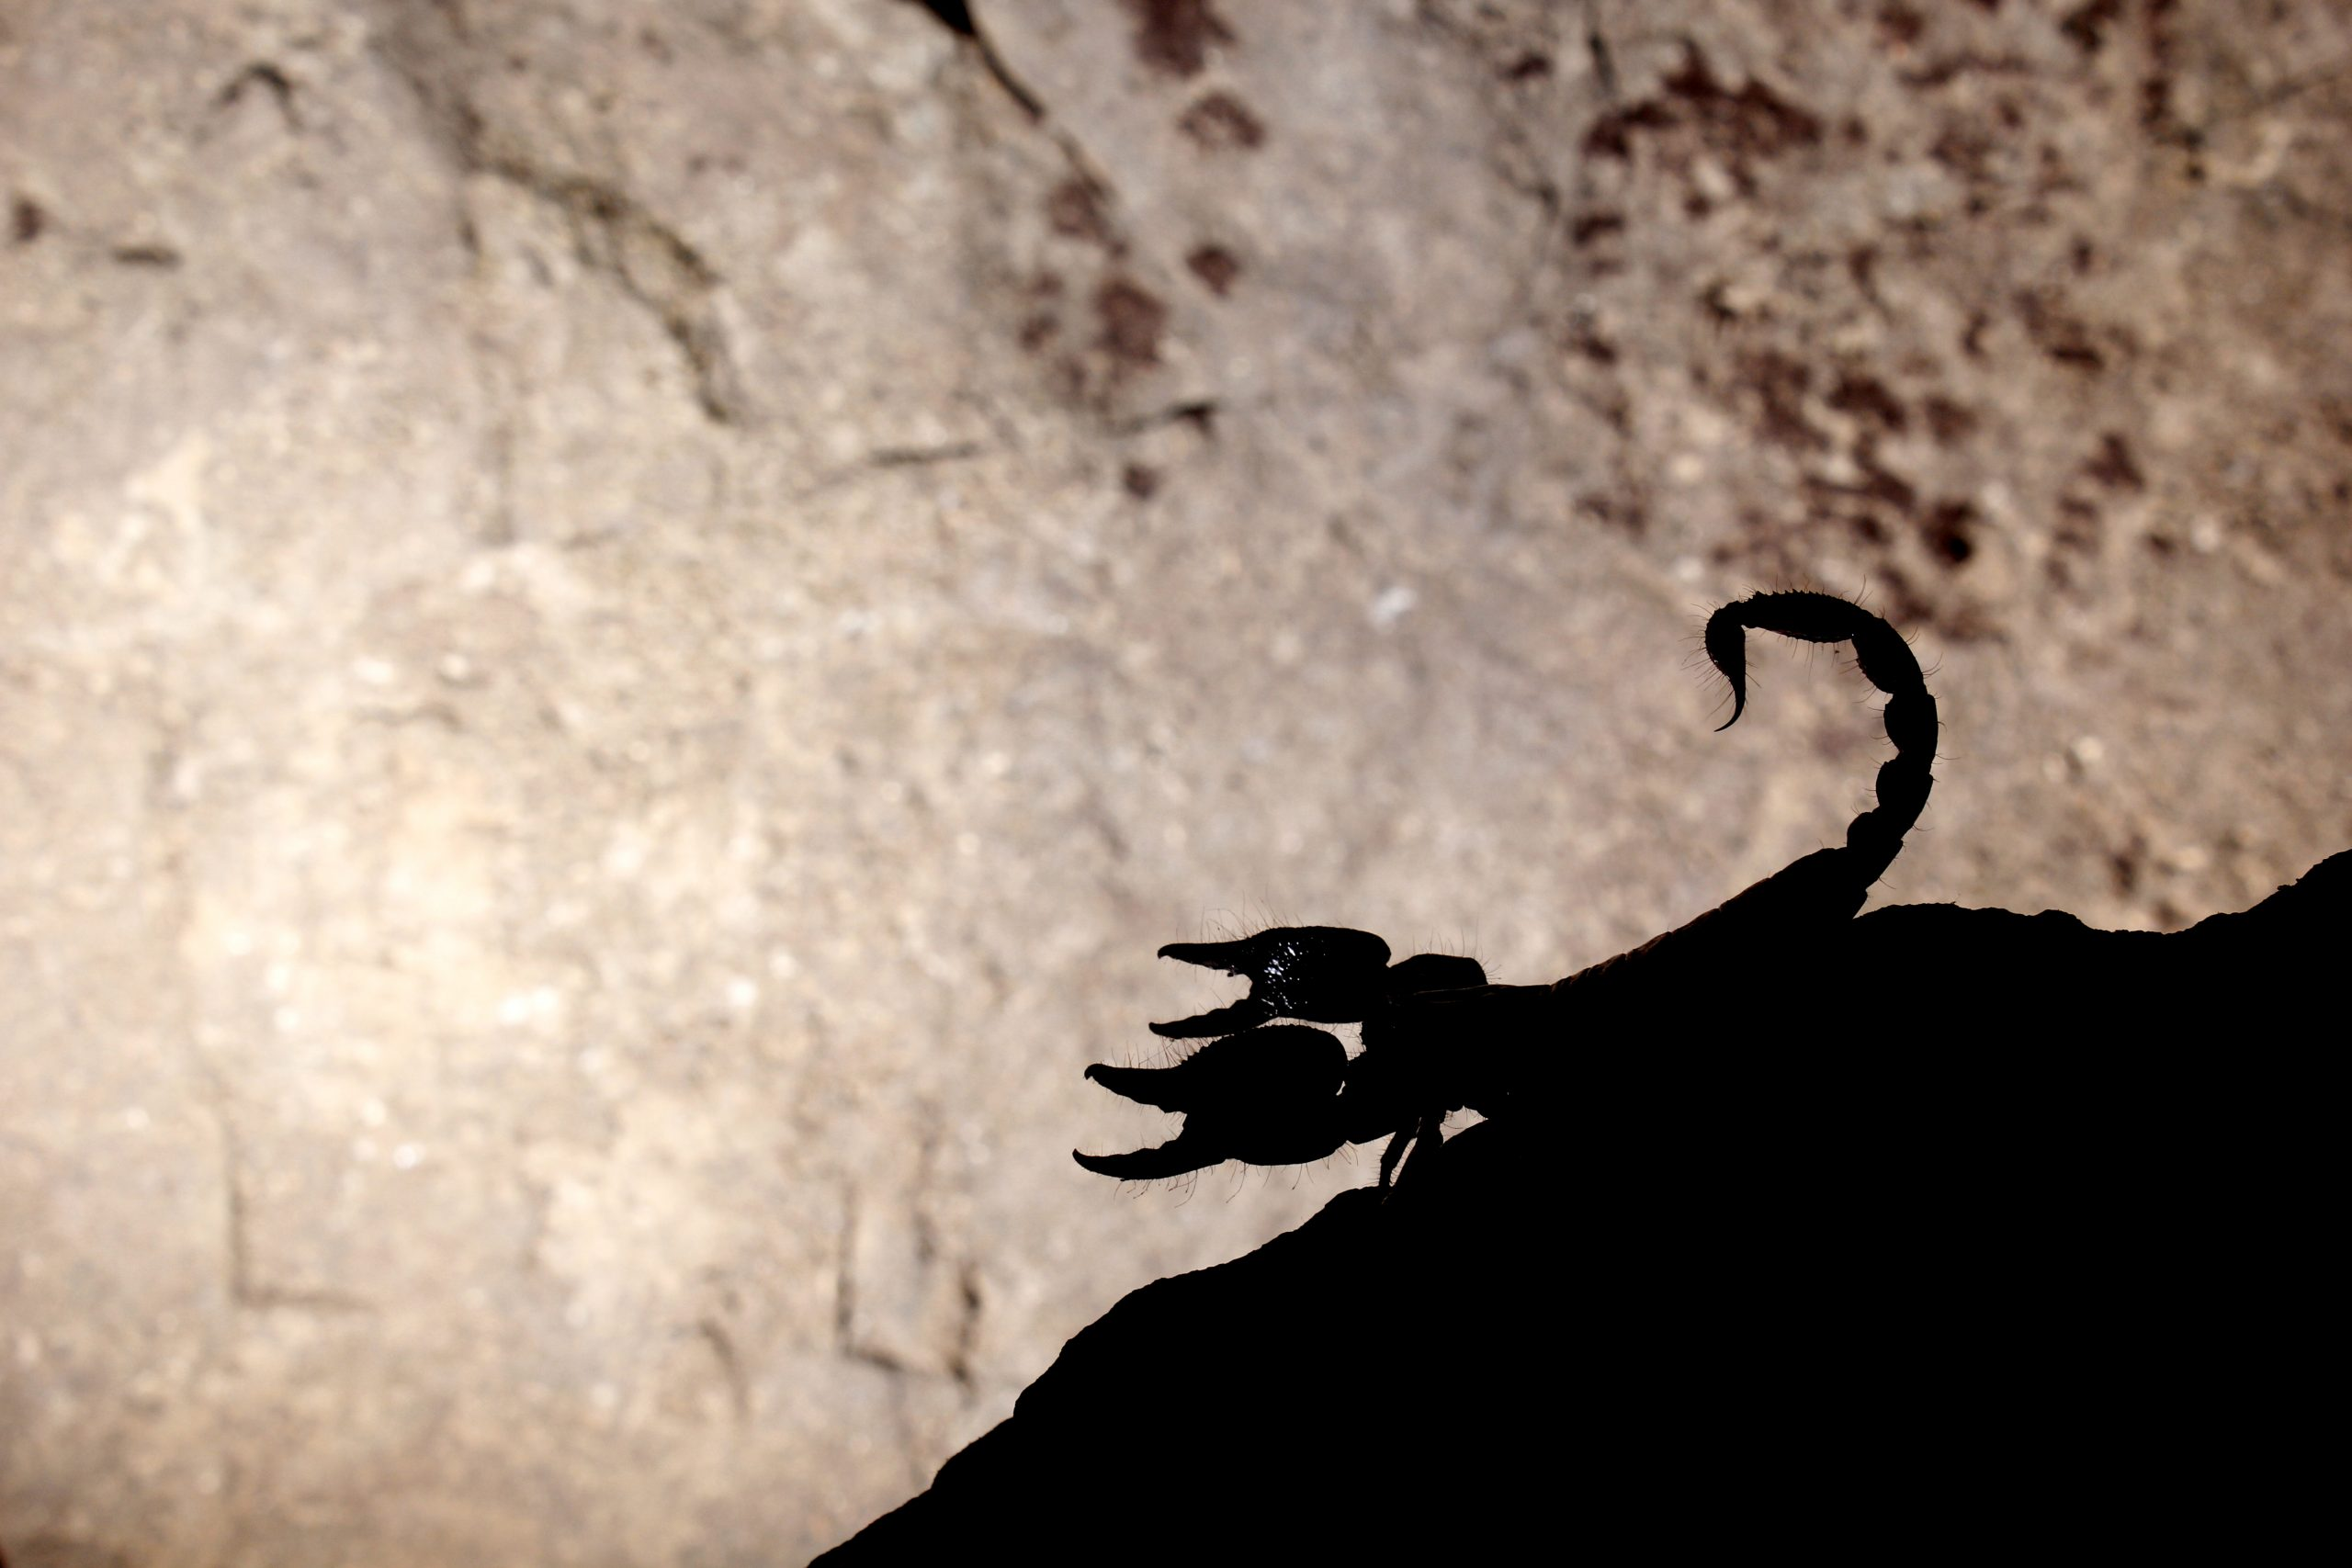 Scorpion sitting on rock